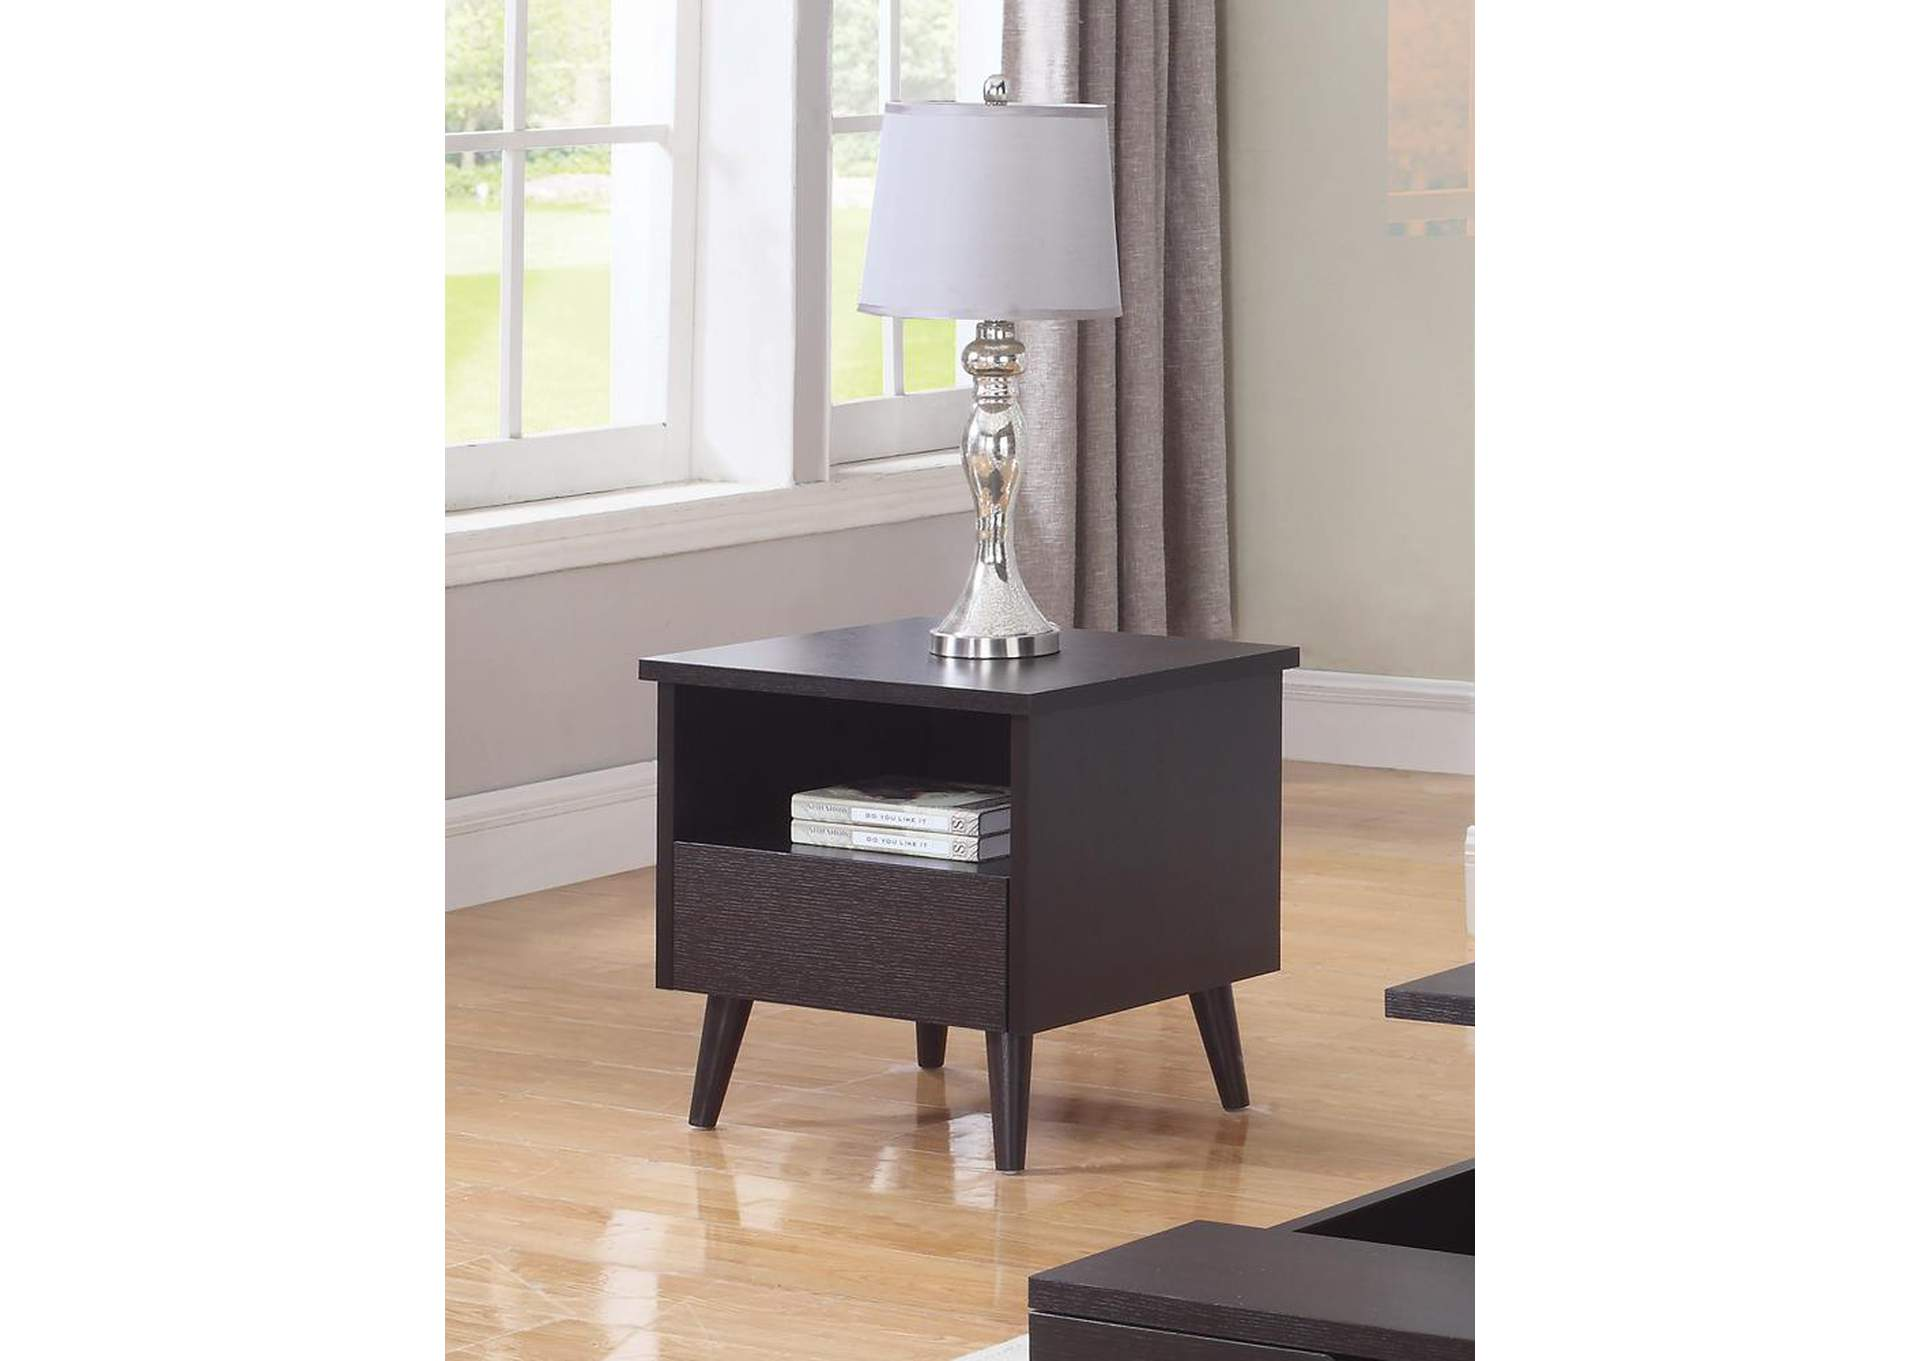 Pleasing Best Buy Furniture And Mattress Red Cocoa End Table Short Links Chair Design For Home Short Linksinfo